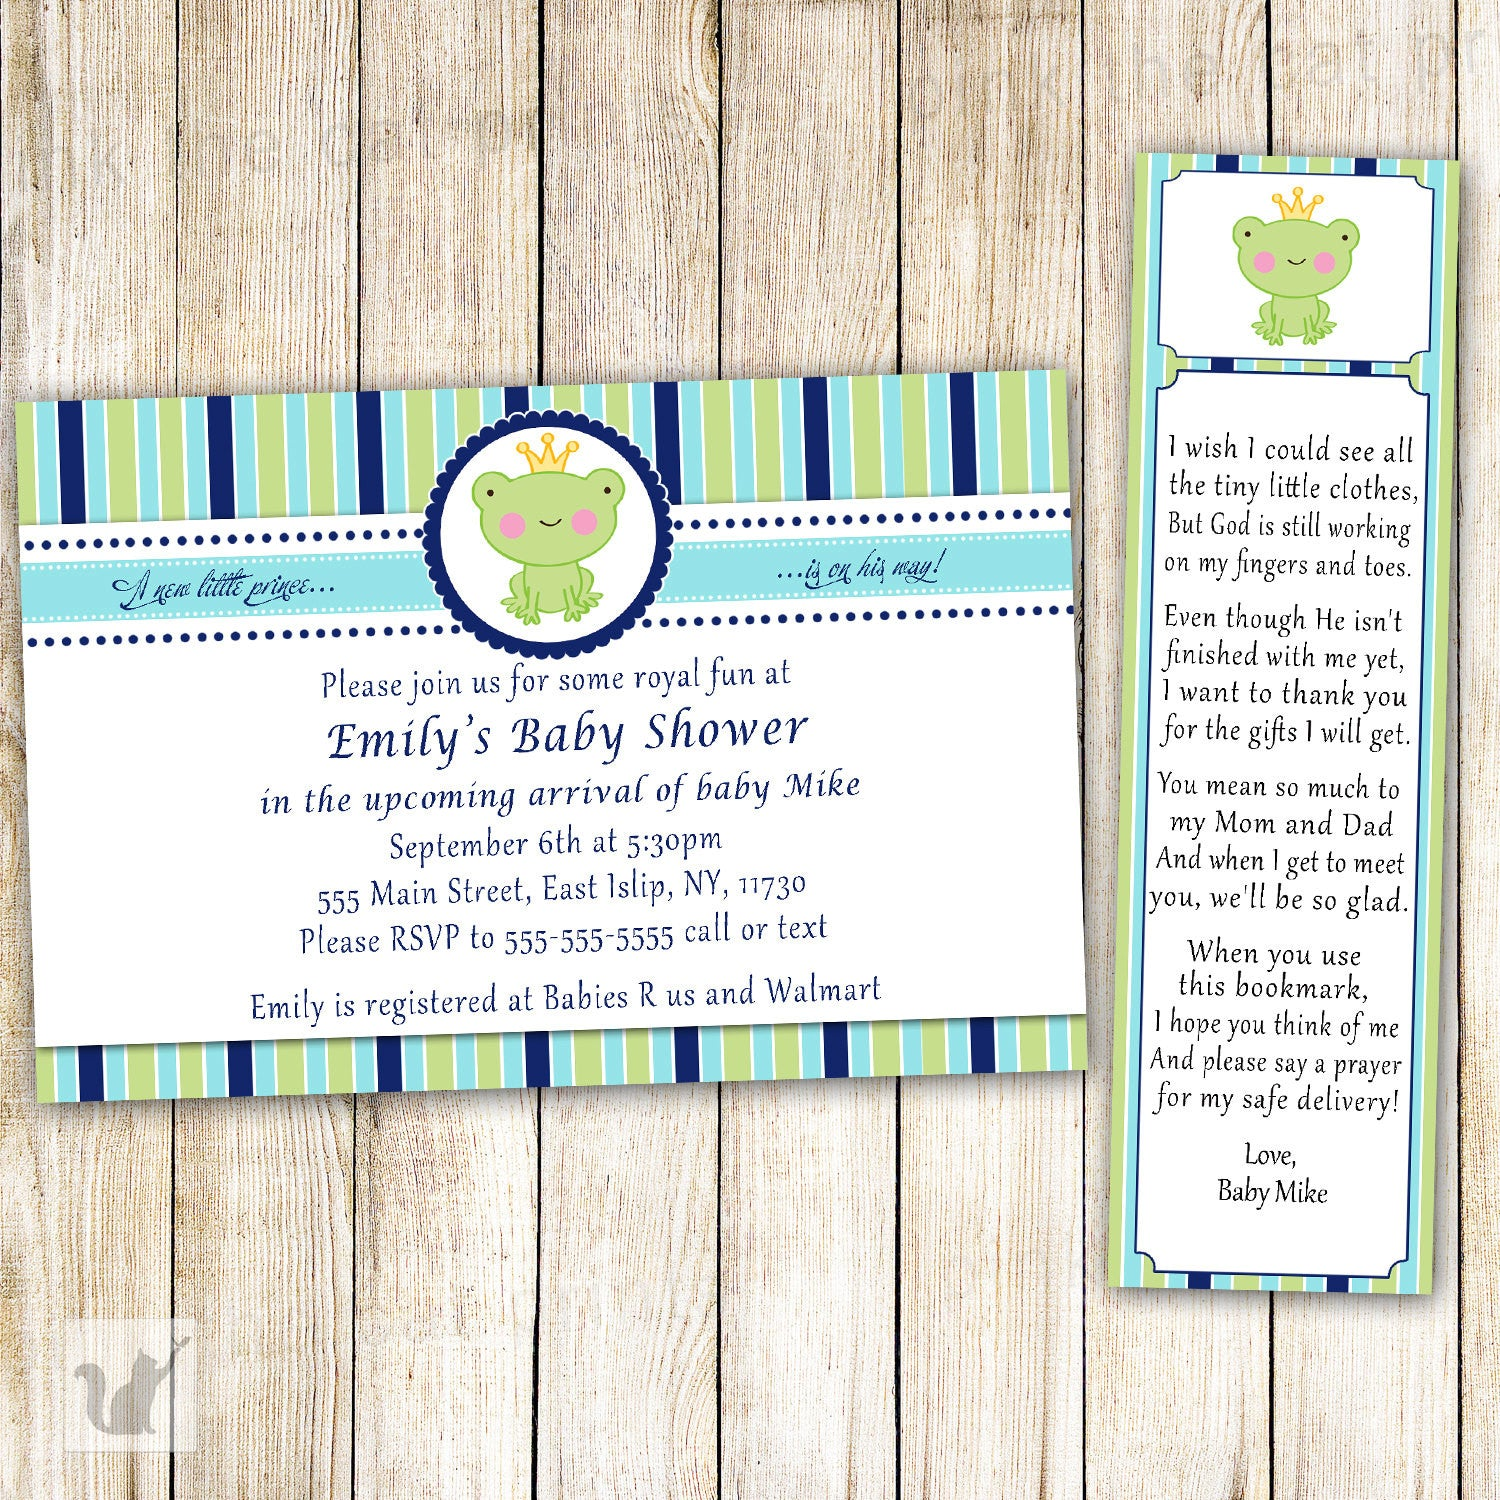 what does rsvp mean on a baby shower invitation